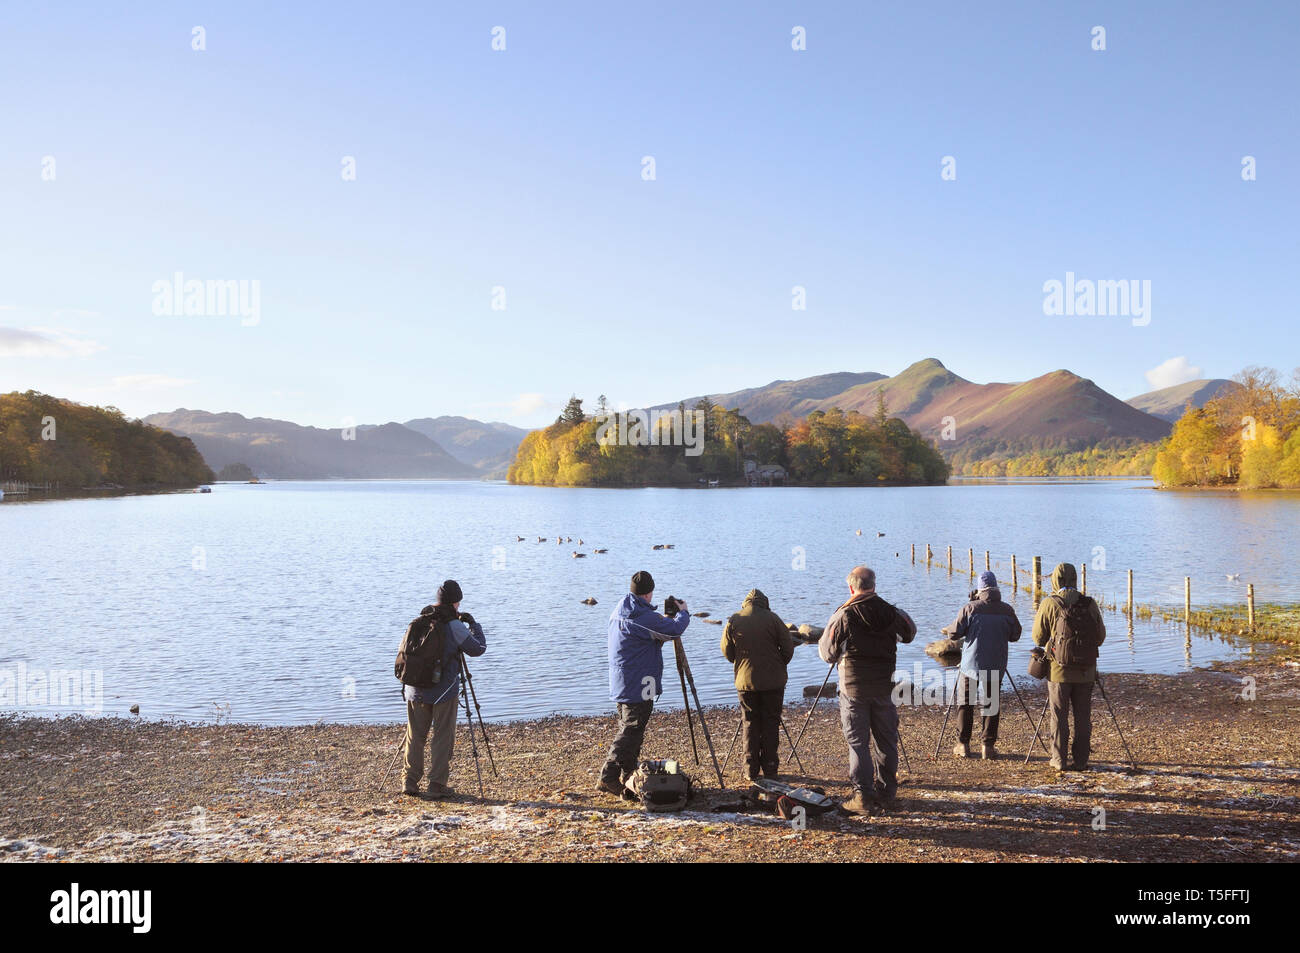 A group of photographers with tripods on the shores of Derwentwater looking towards Derwent Isle and Catbells, Lake District, England, UK - Stock Image